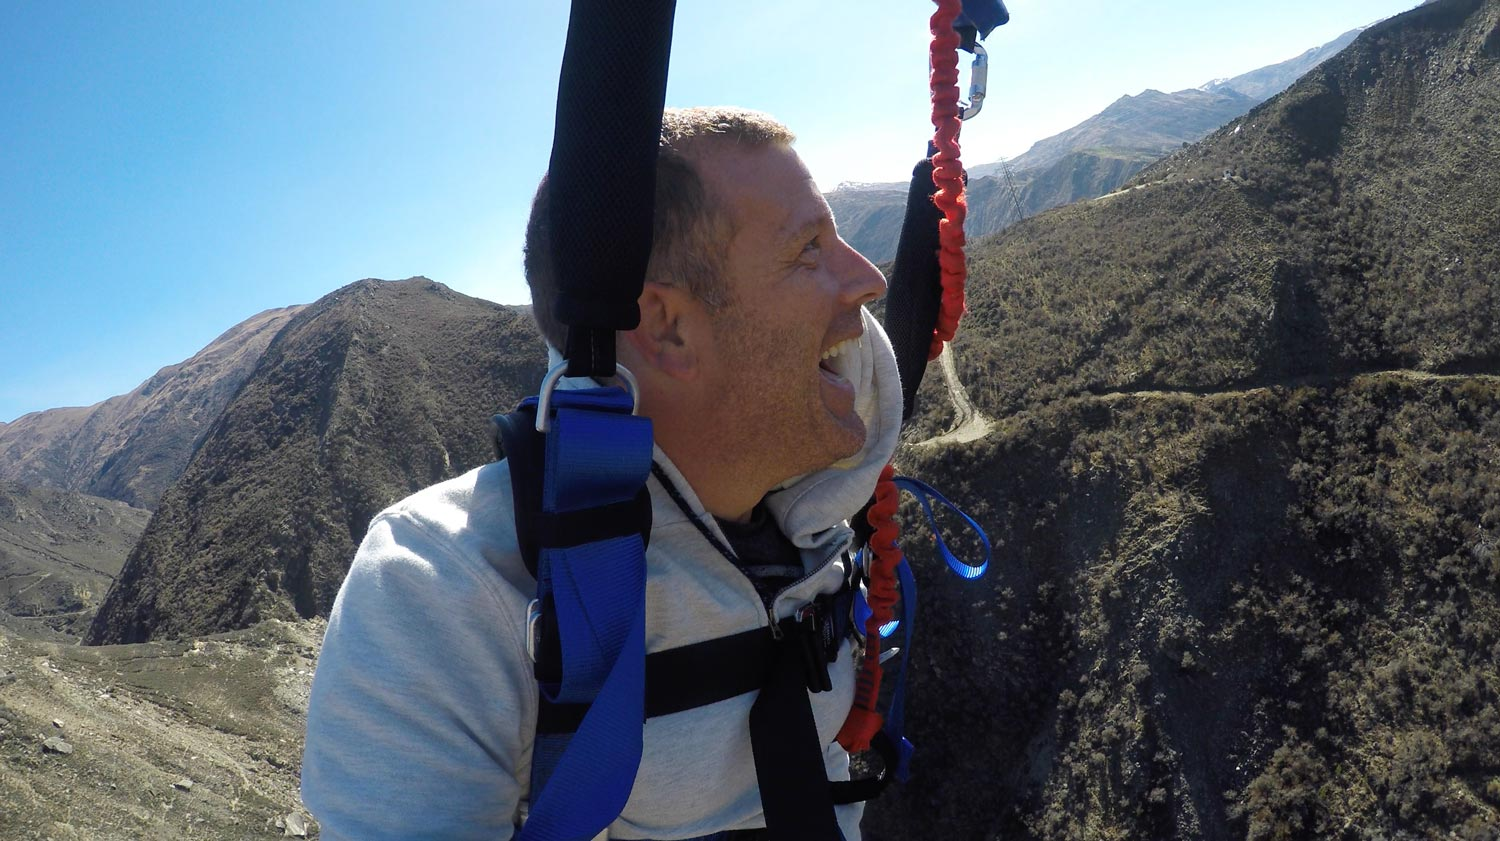 Michael after doing the Nevis Catapult in Queenstown